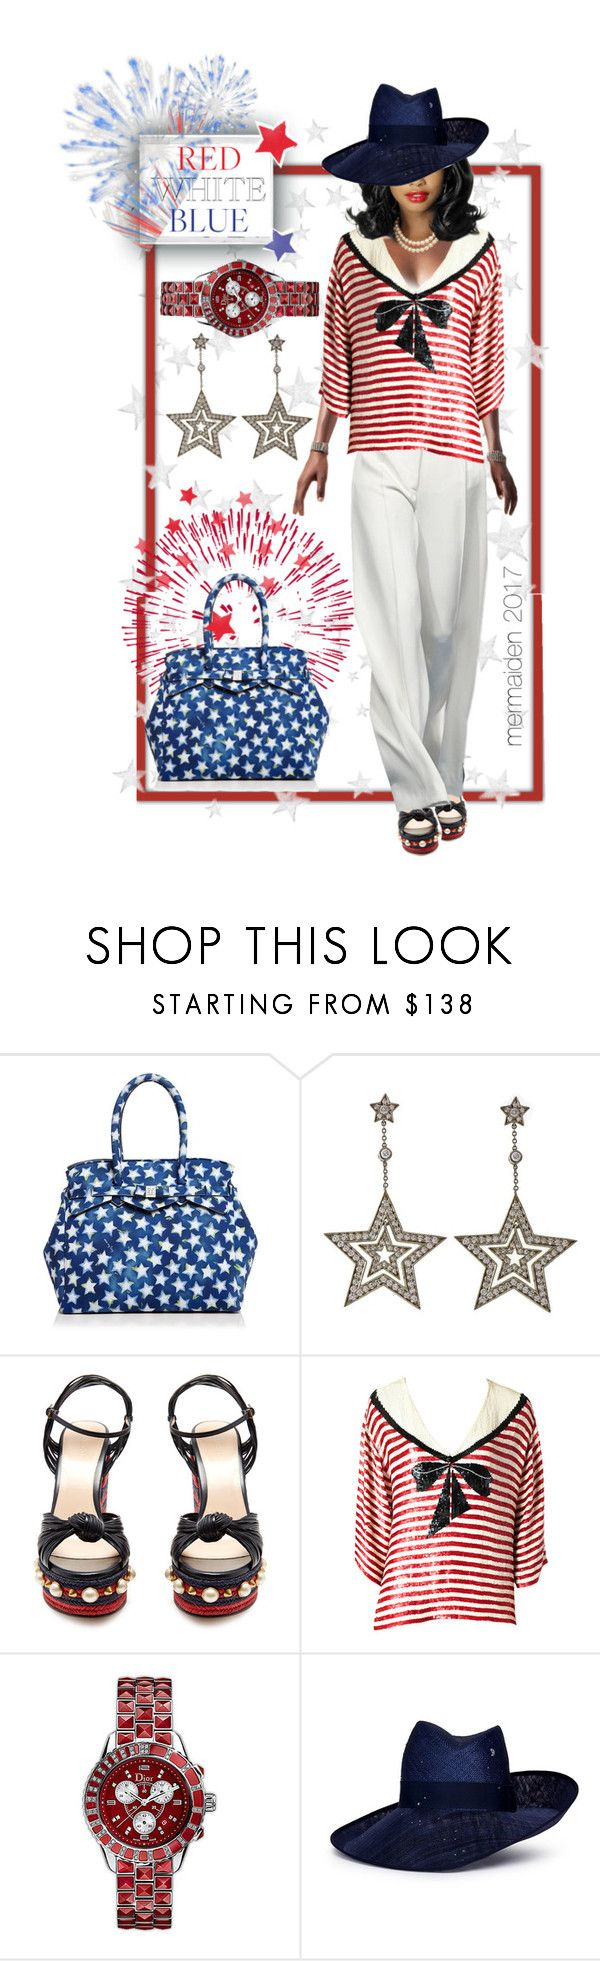 """""""Independence Day #2"""" by mermaiden ❤ liked on Polyvore featuring Polaroid, Save My Bag, Tiffany & Co., Gucci, Oscar de la Renta, Christian Dior, Piers Atkinson, clean, classy and fourthofjuly"""